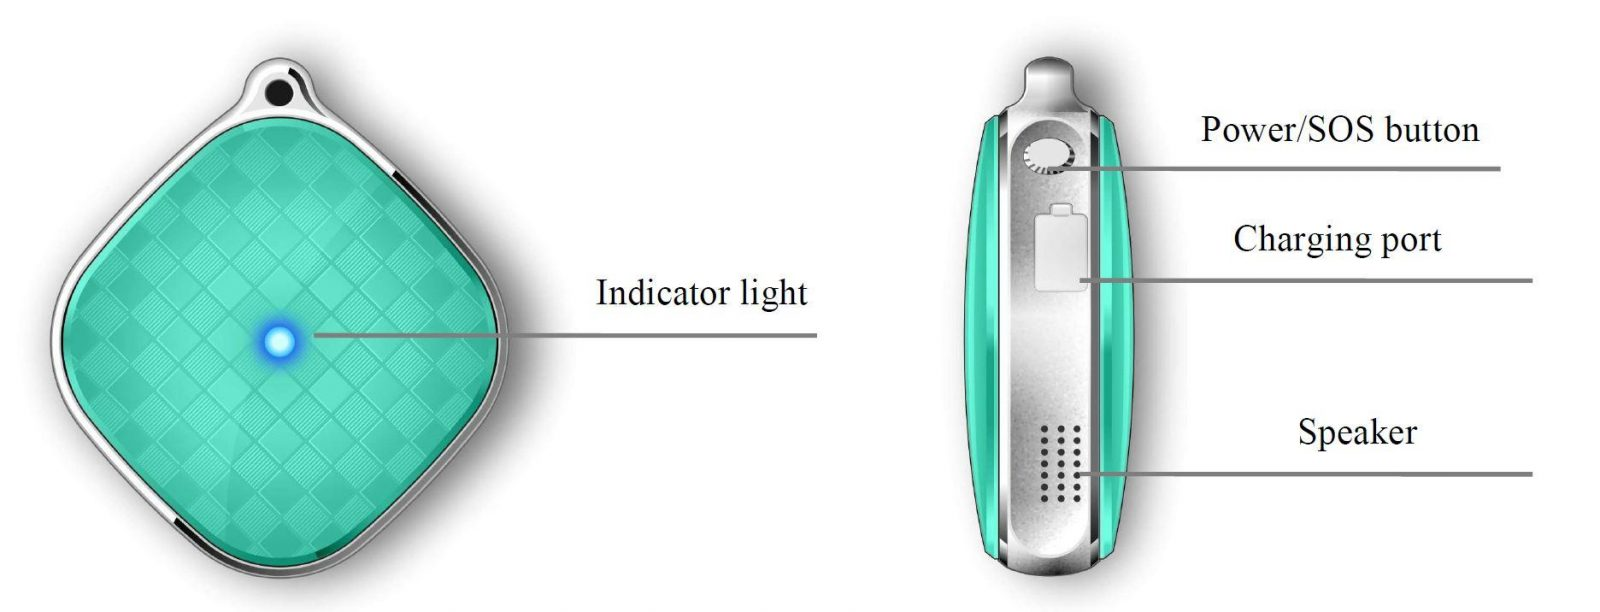 Pendant GPS Tracker for Elderly - Product View